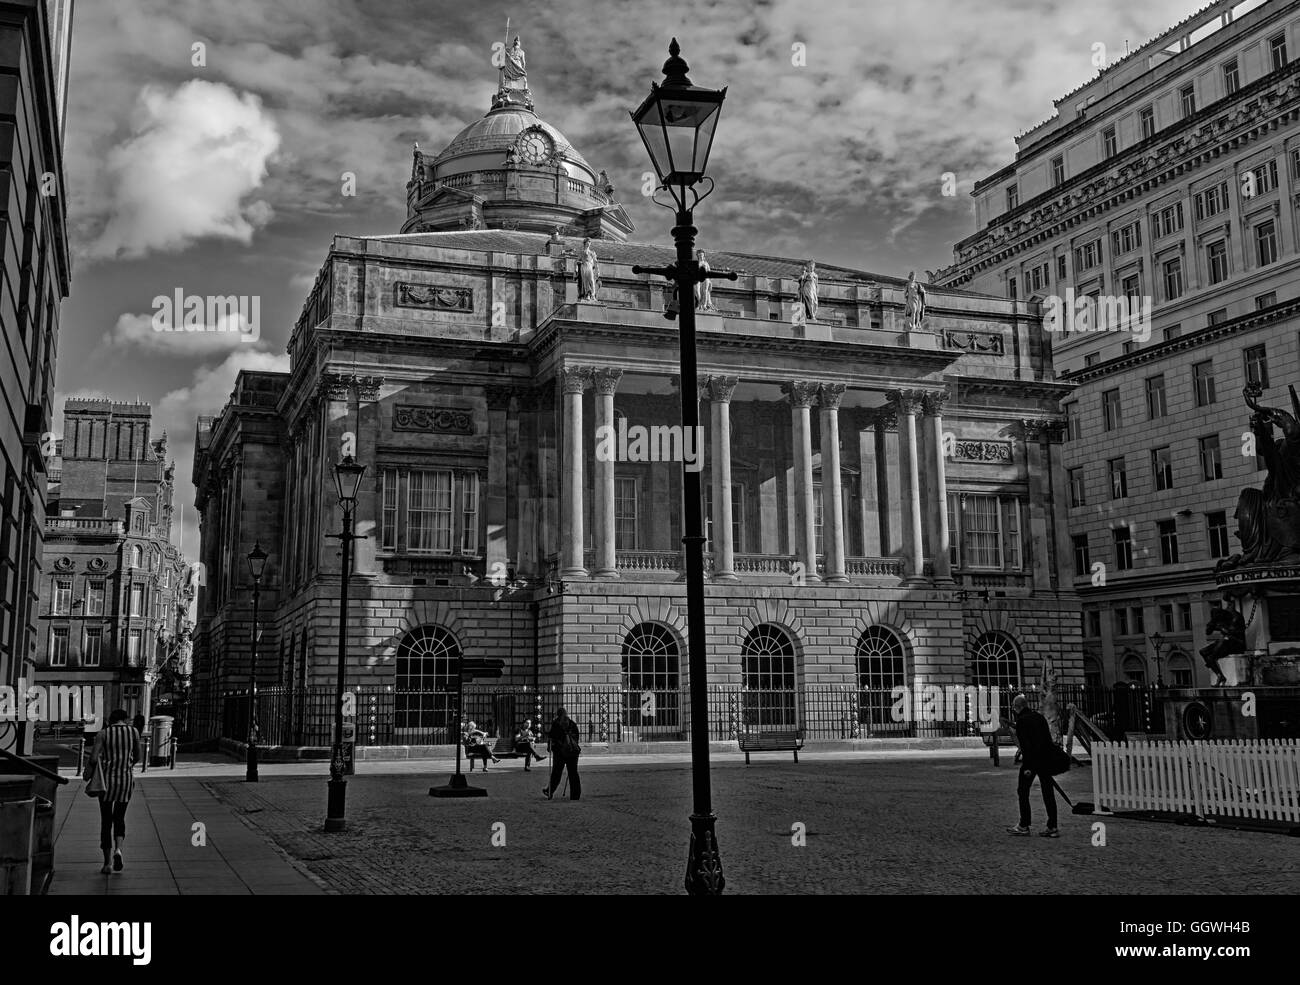 Townhall,Merseyside,Street,building,structure,listed,buildings,18th,century,stone,Lord,Mayors,Mayor,parlour,Council,chamber,local,government,Corporation,James,Wyatt,Castle,Street,tour,licensed,for,weddings,slate,lead,roof,dome,18th Century,Buildings Of England,Town Hall,Dale St,Dale Street,GoTonySmith,@HotpixUK,HotpixUK,United,Kingdom,GB,English,British,domed,clock,square,exchange,flags,mono,BW,Black,White,Buy Pictures of,Buy Images Of,Images of,Stock Images,United Kingdom,Great Britain,Exchange Flags,Black and white